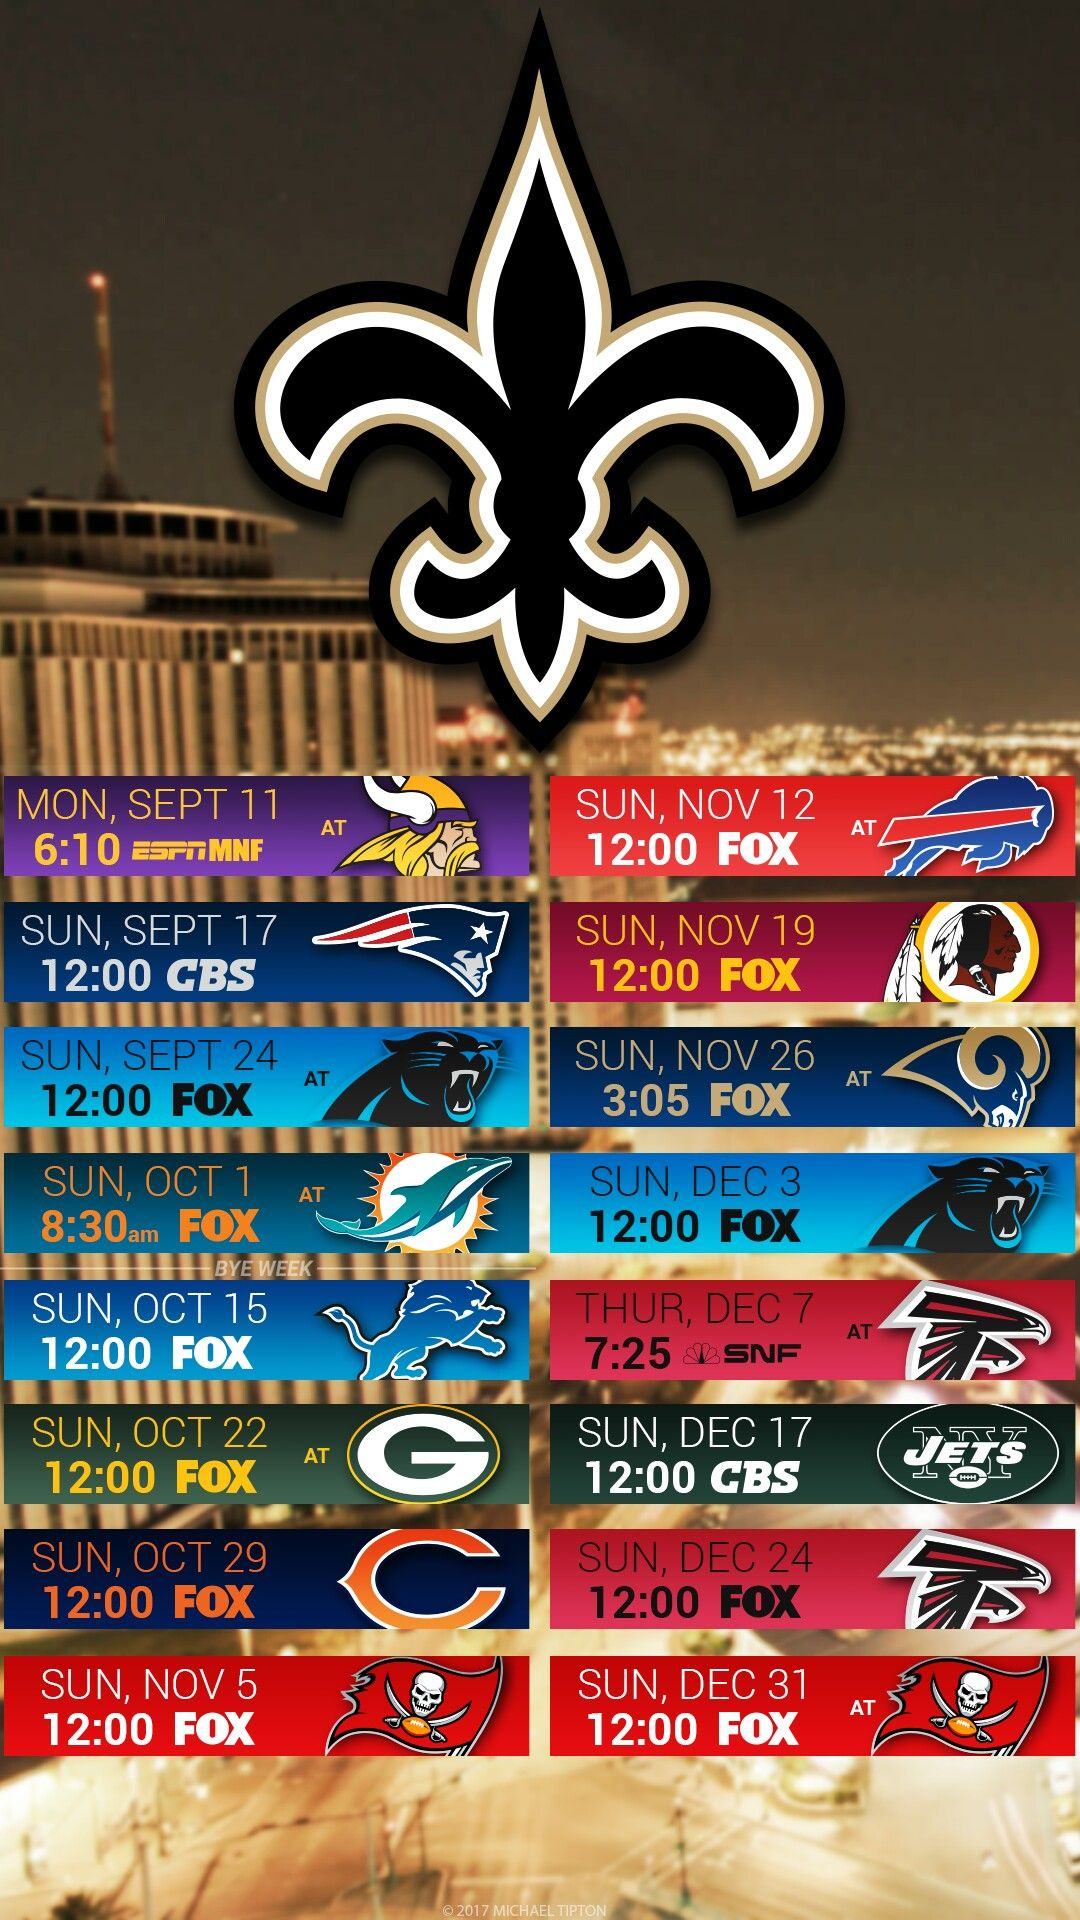 New Orleans Saints 2017 I Phone Android Schedule Wallpaper New